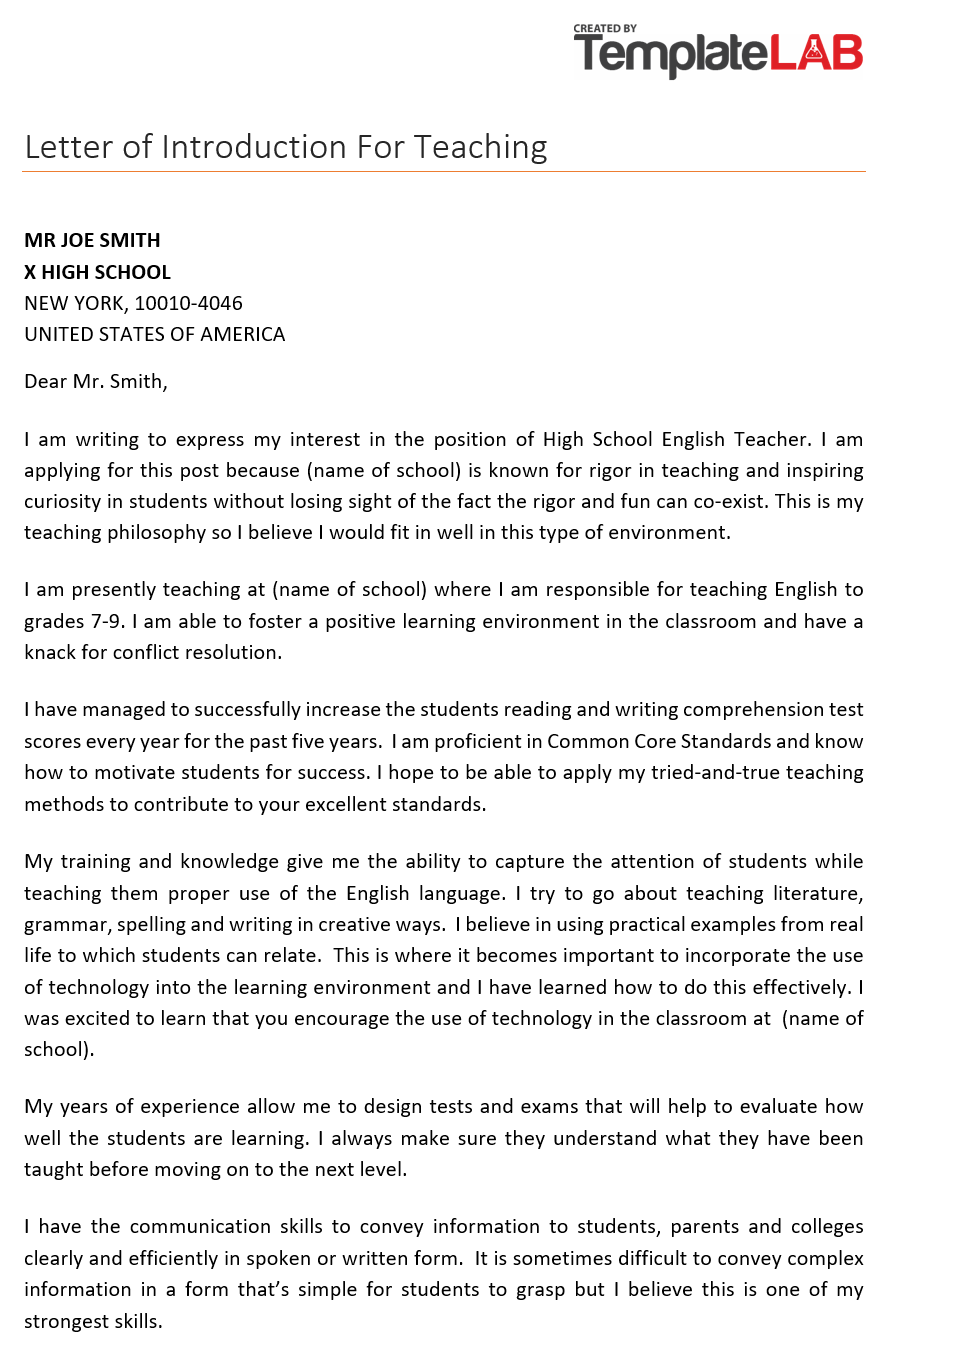 Example Of Letter Of Introduction For A Teacher from templatelab.com